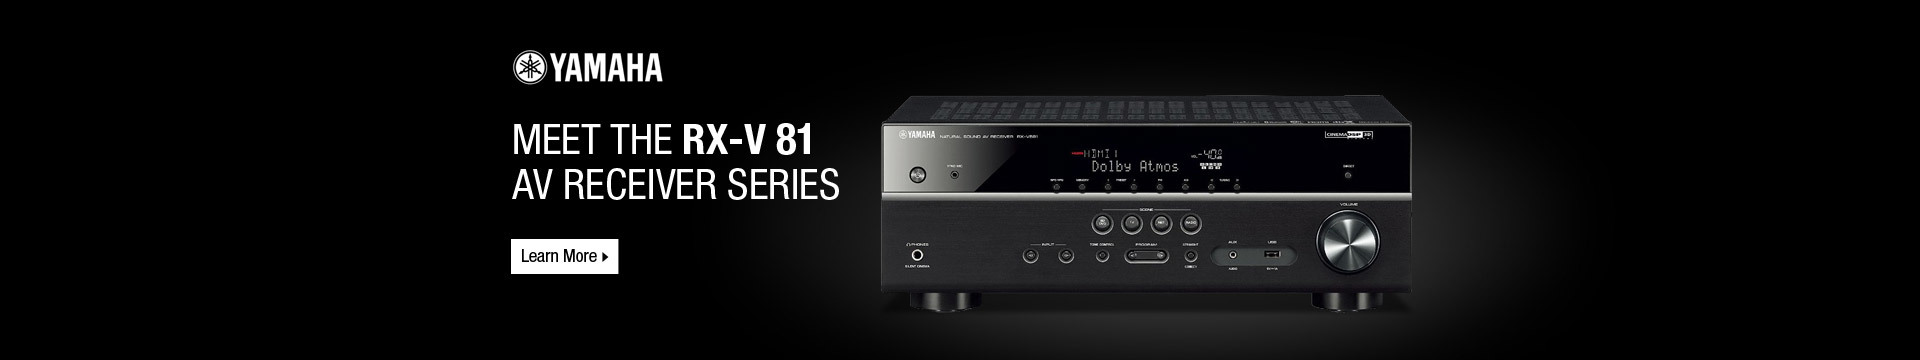 Meet the RX-V 81 AV receiver series